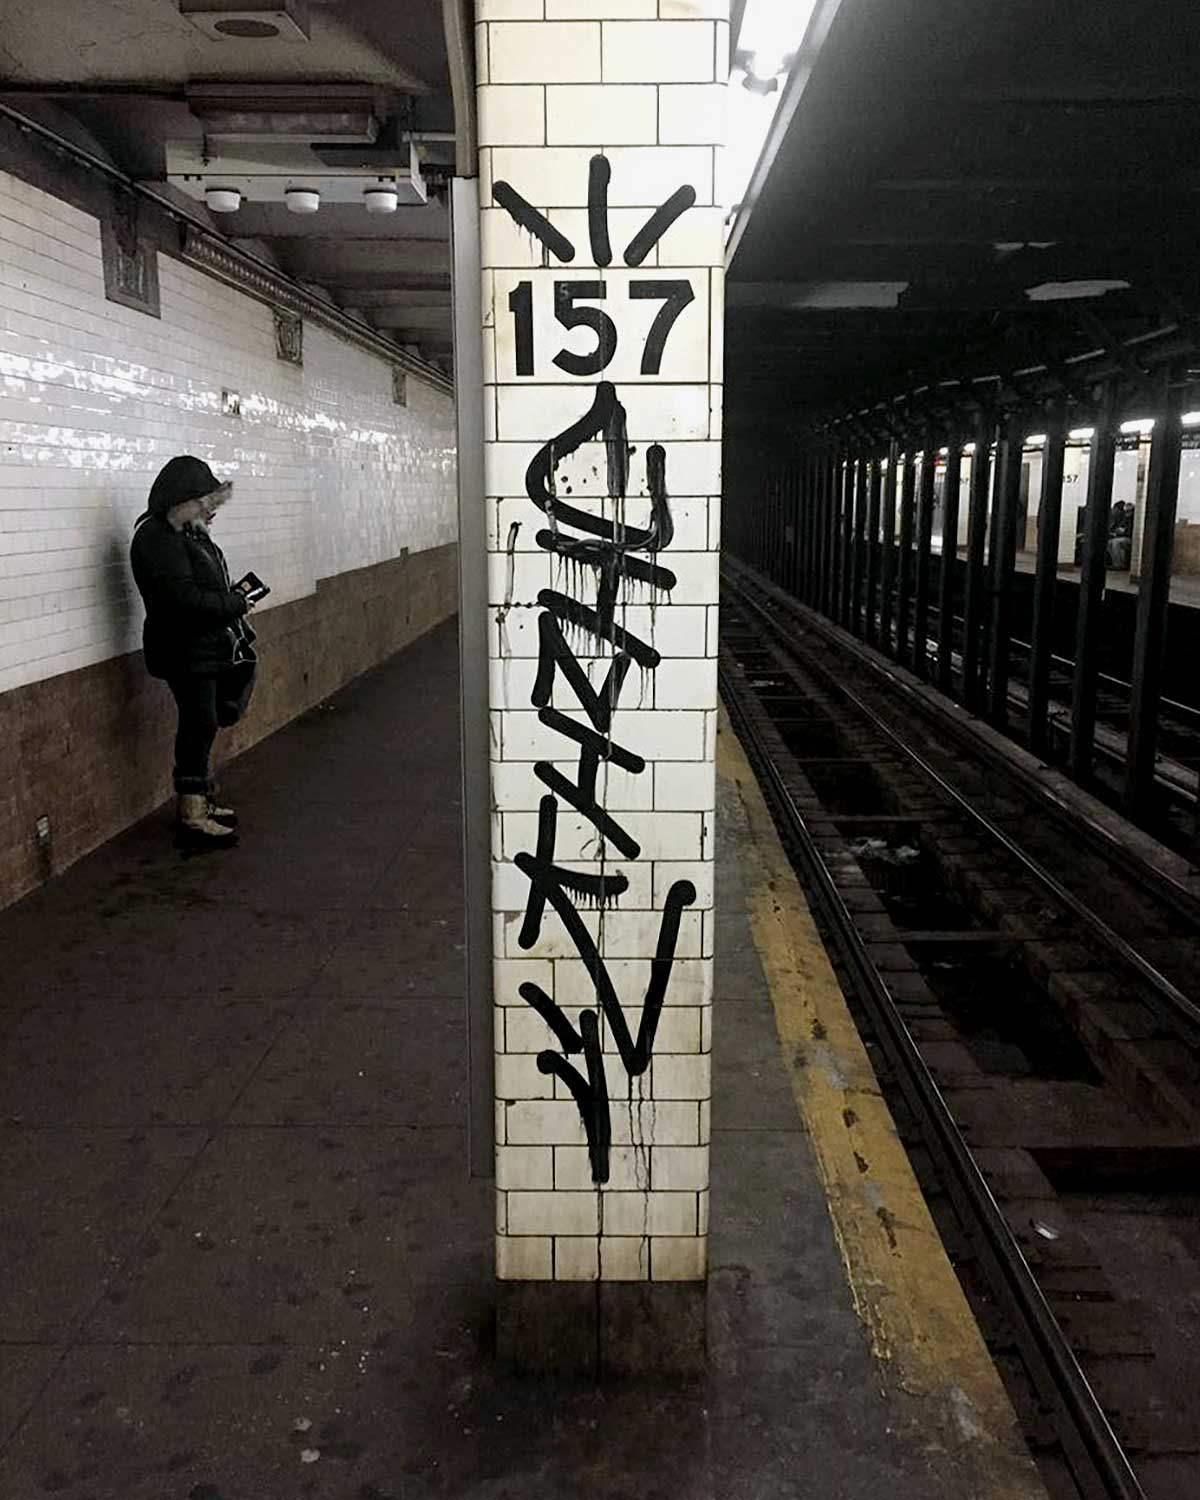 Graffiti artist Cinik handstyle tag spotted at 157 station in NYC